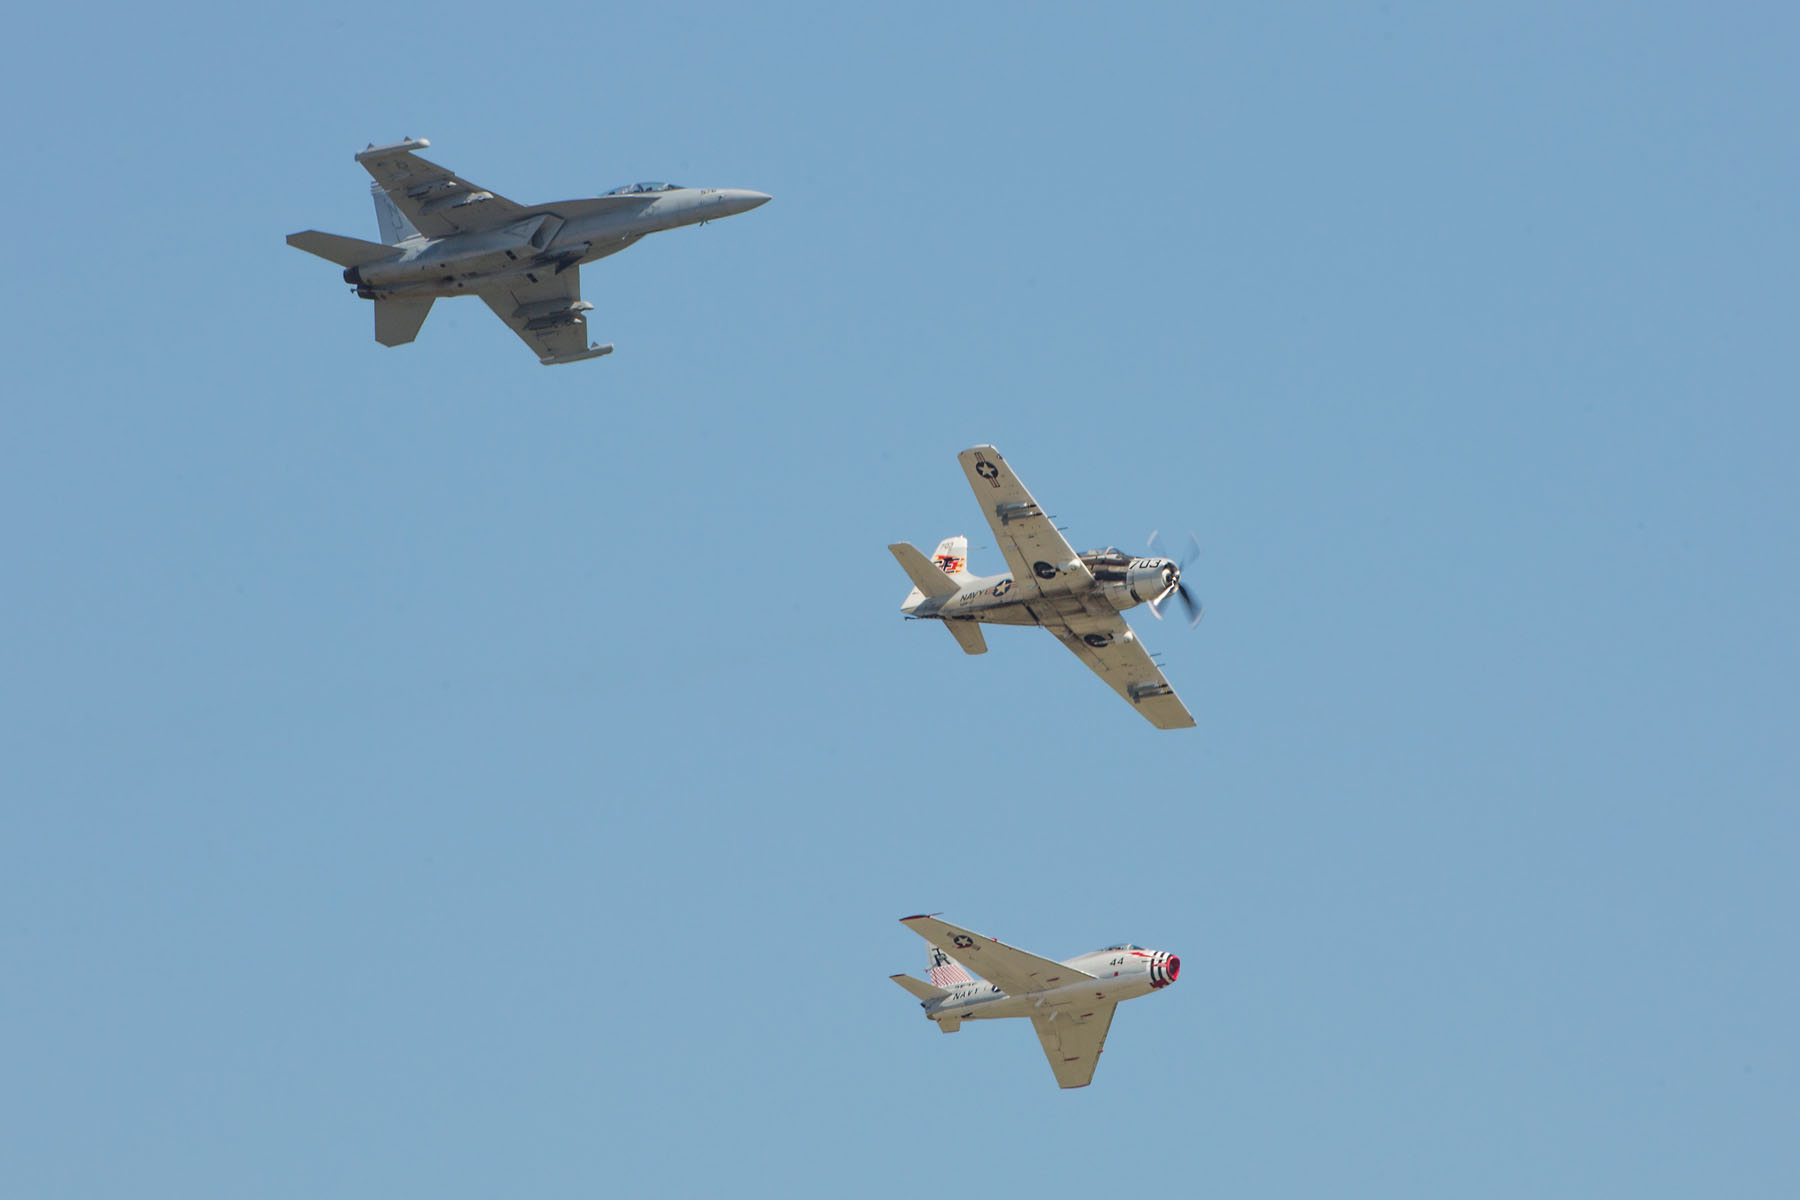 Heritage flight, Sioux Falls Air Show, August 2019.  The flight featured Navy planes (from top) F/A-18 Hornet, AD-4 Skyraider, and FJ-4B Fury.  Click for next photo.